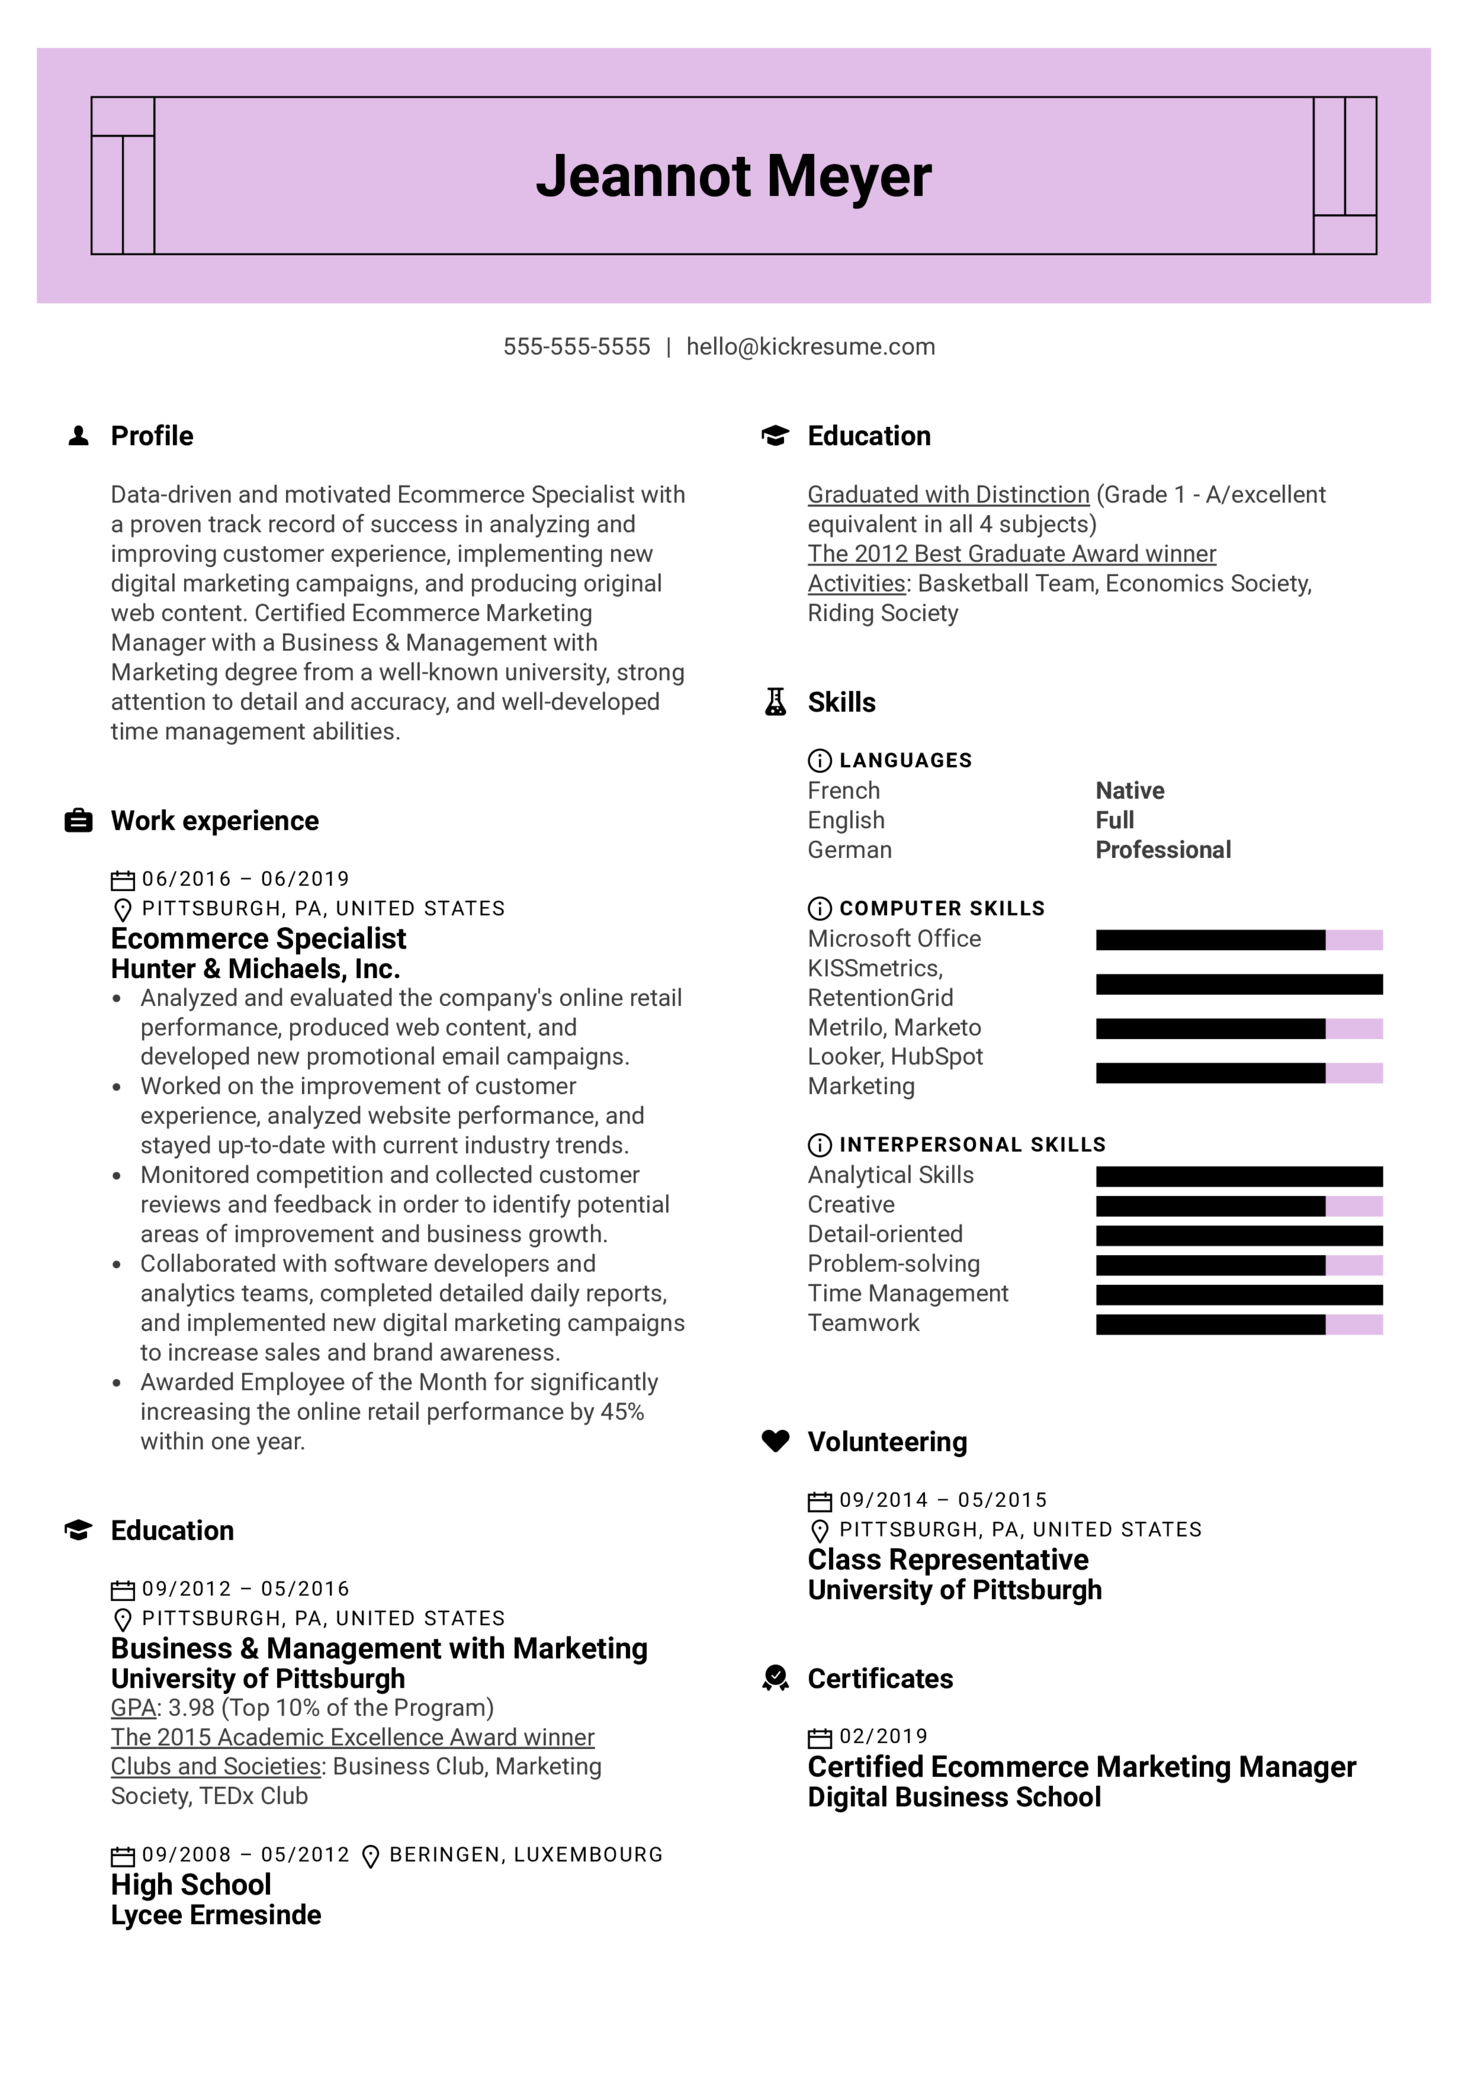 Ecommerce Specialist Resume Sample (Part 1)